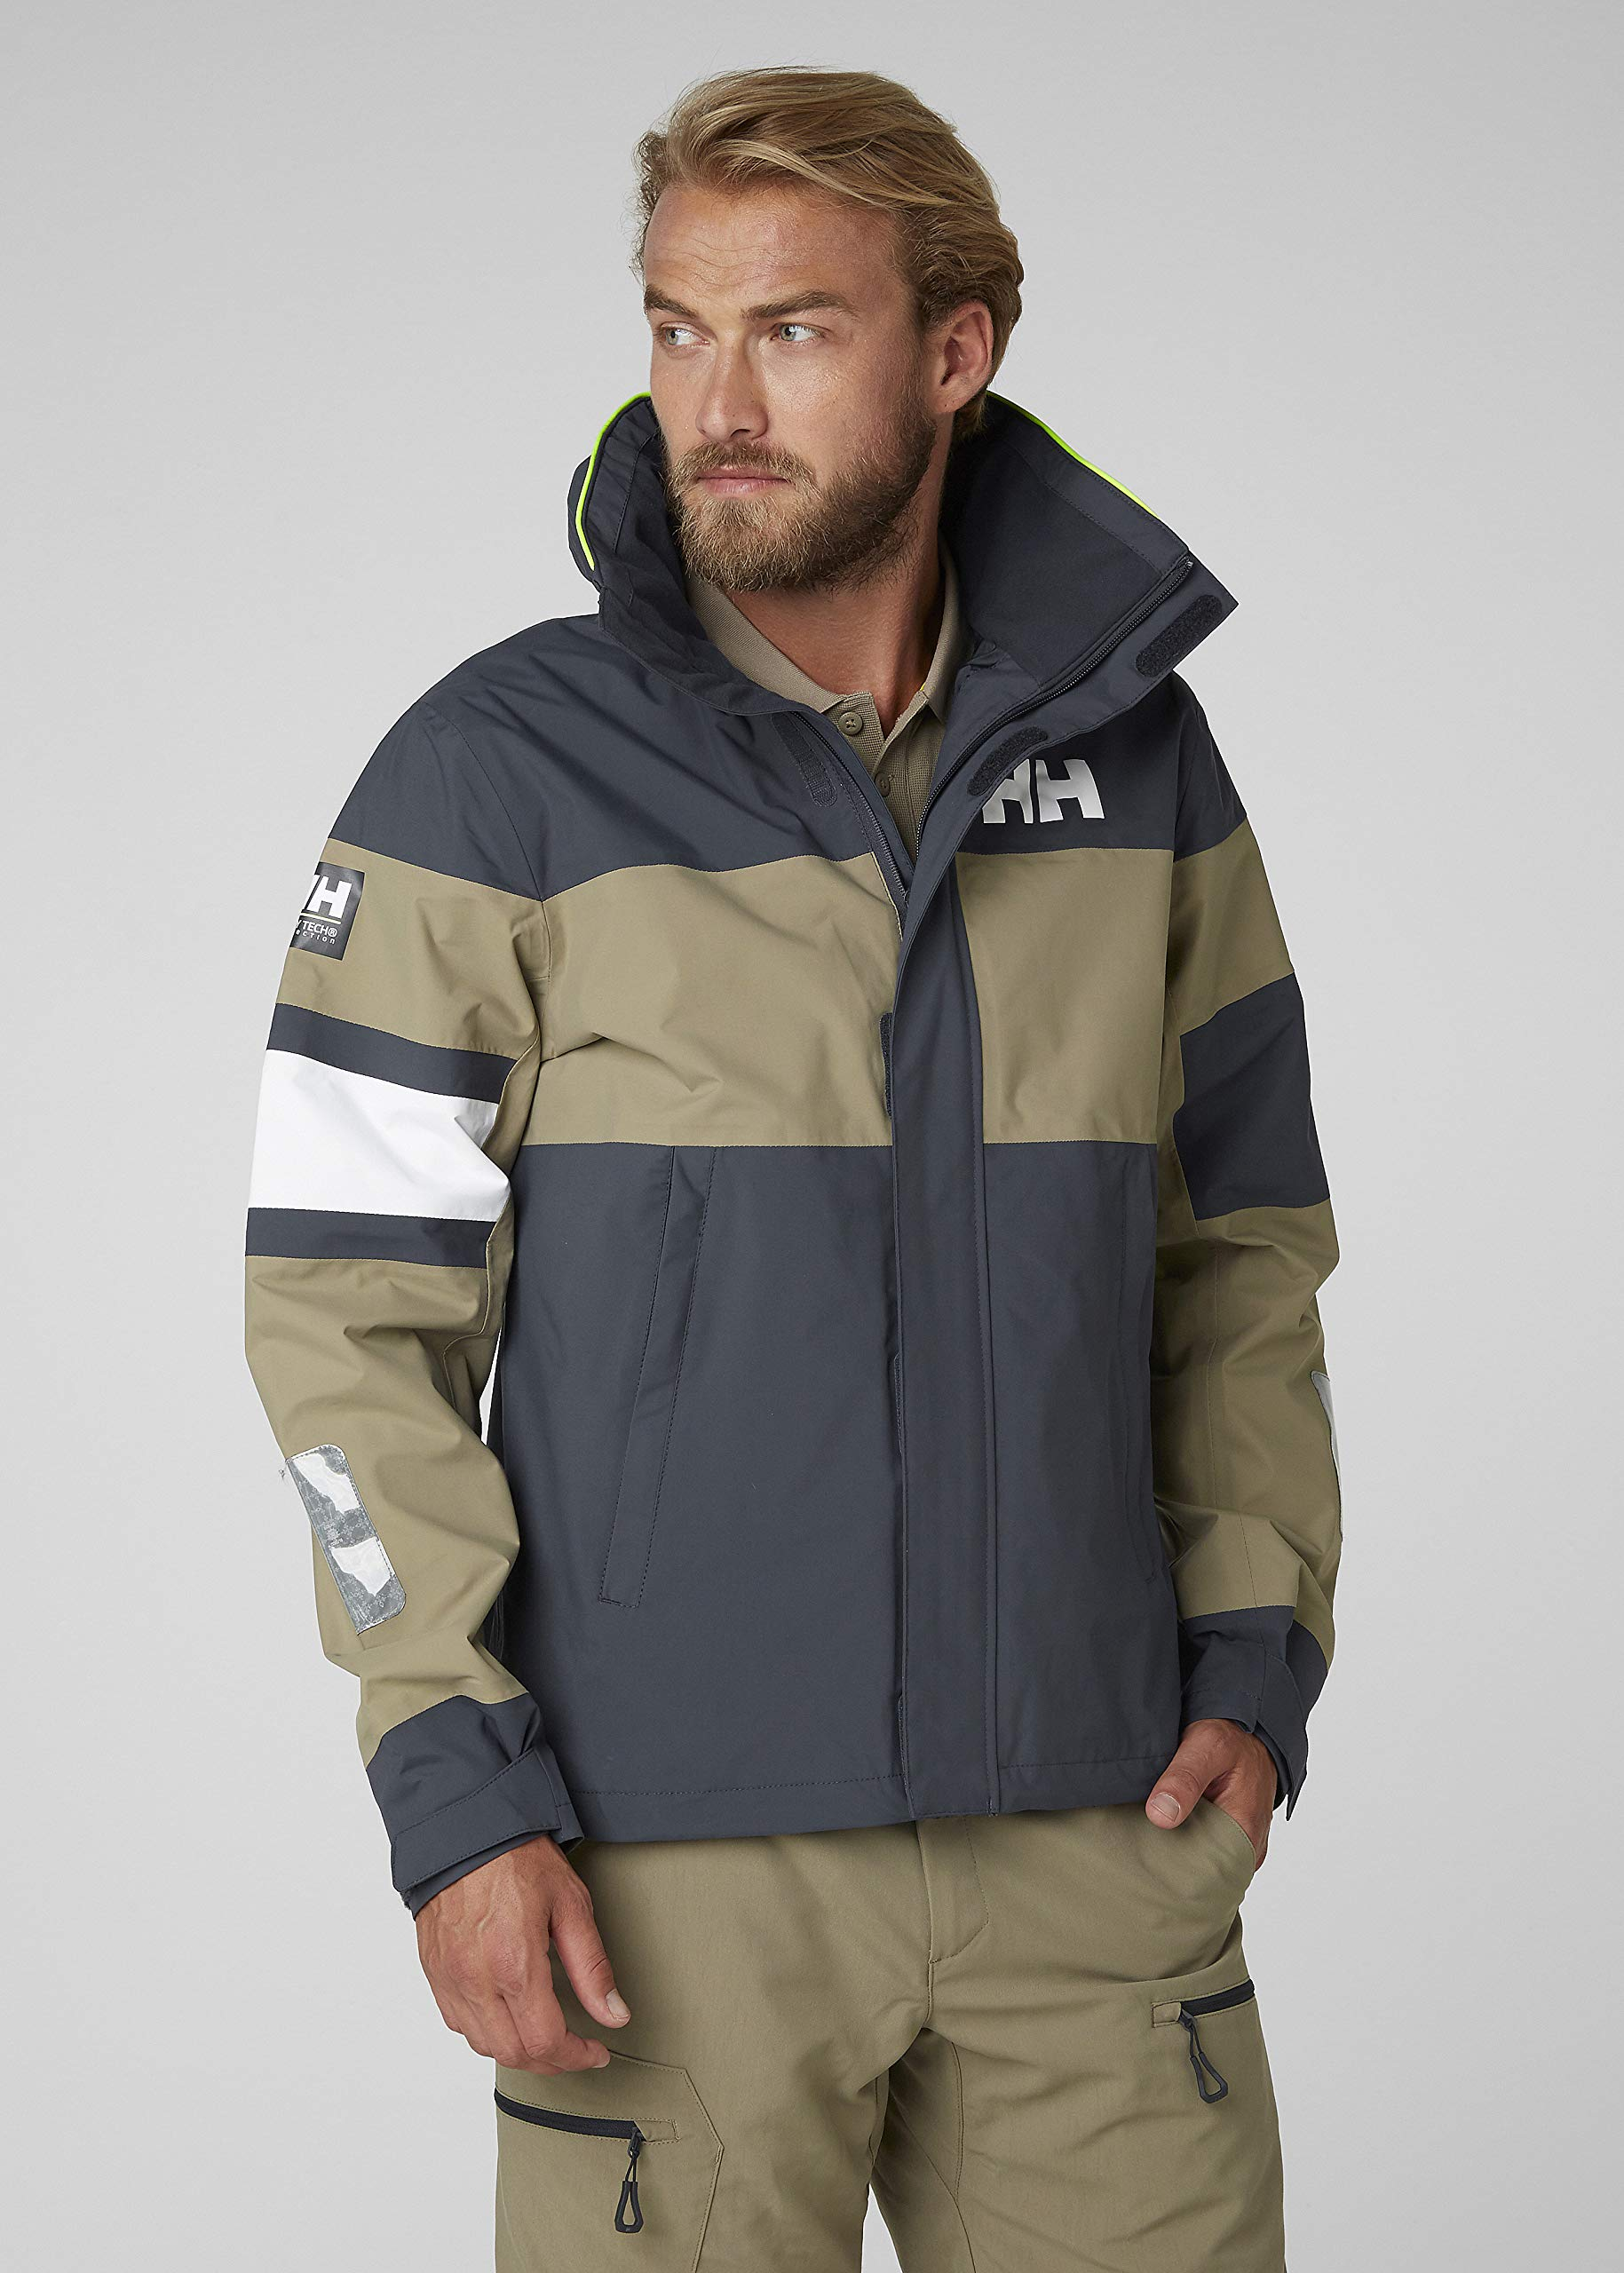 81PJx7Ko7VL - Helly Hansen Waterproof Salt Light Sailing Jacket